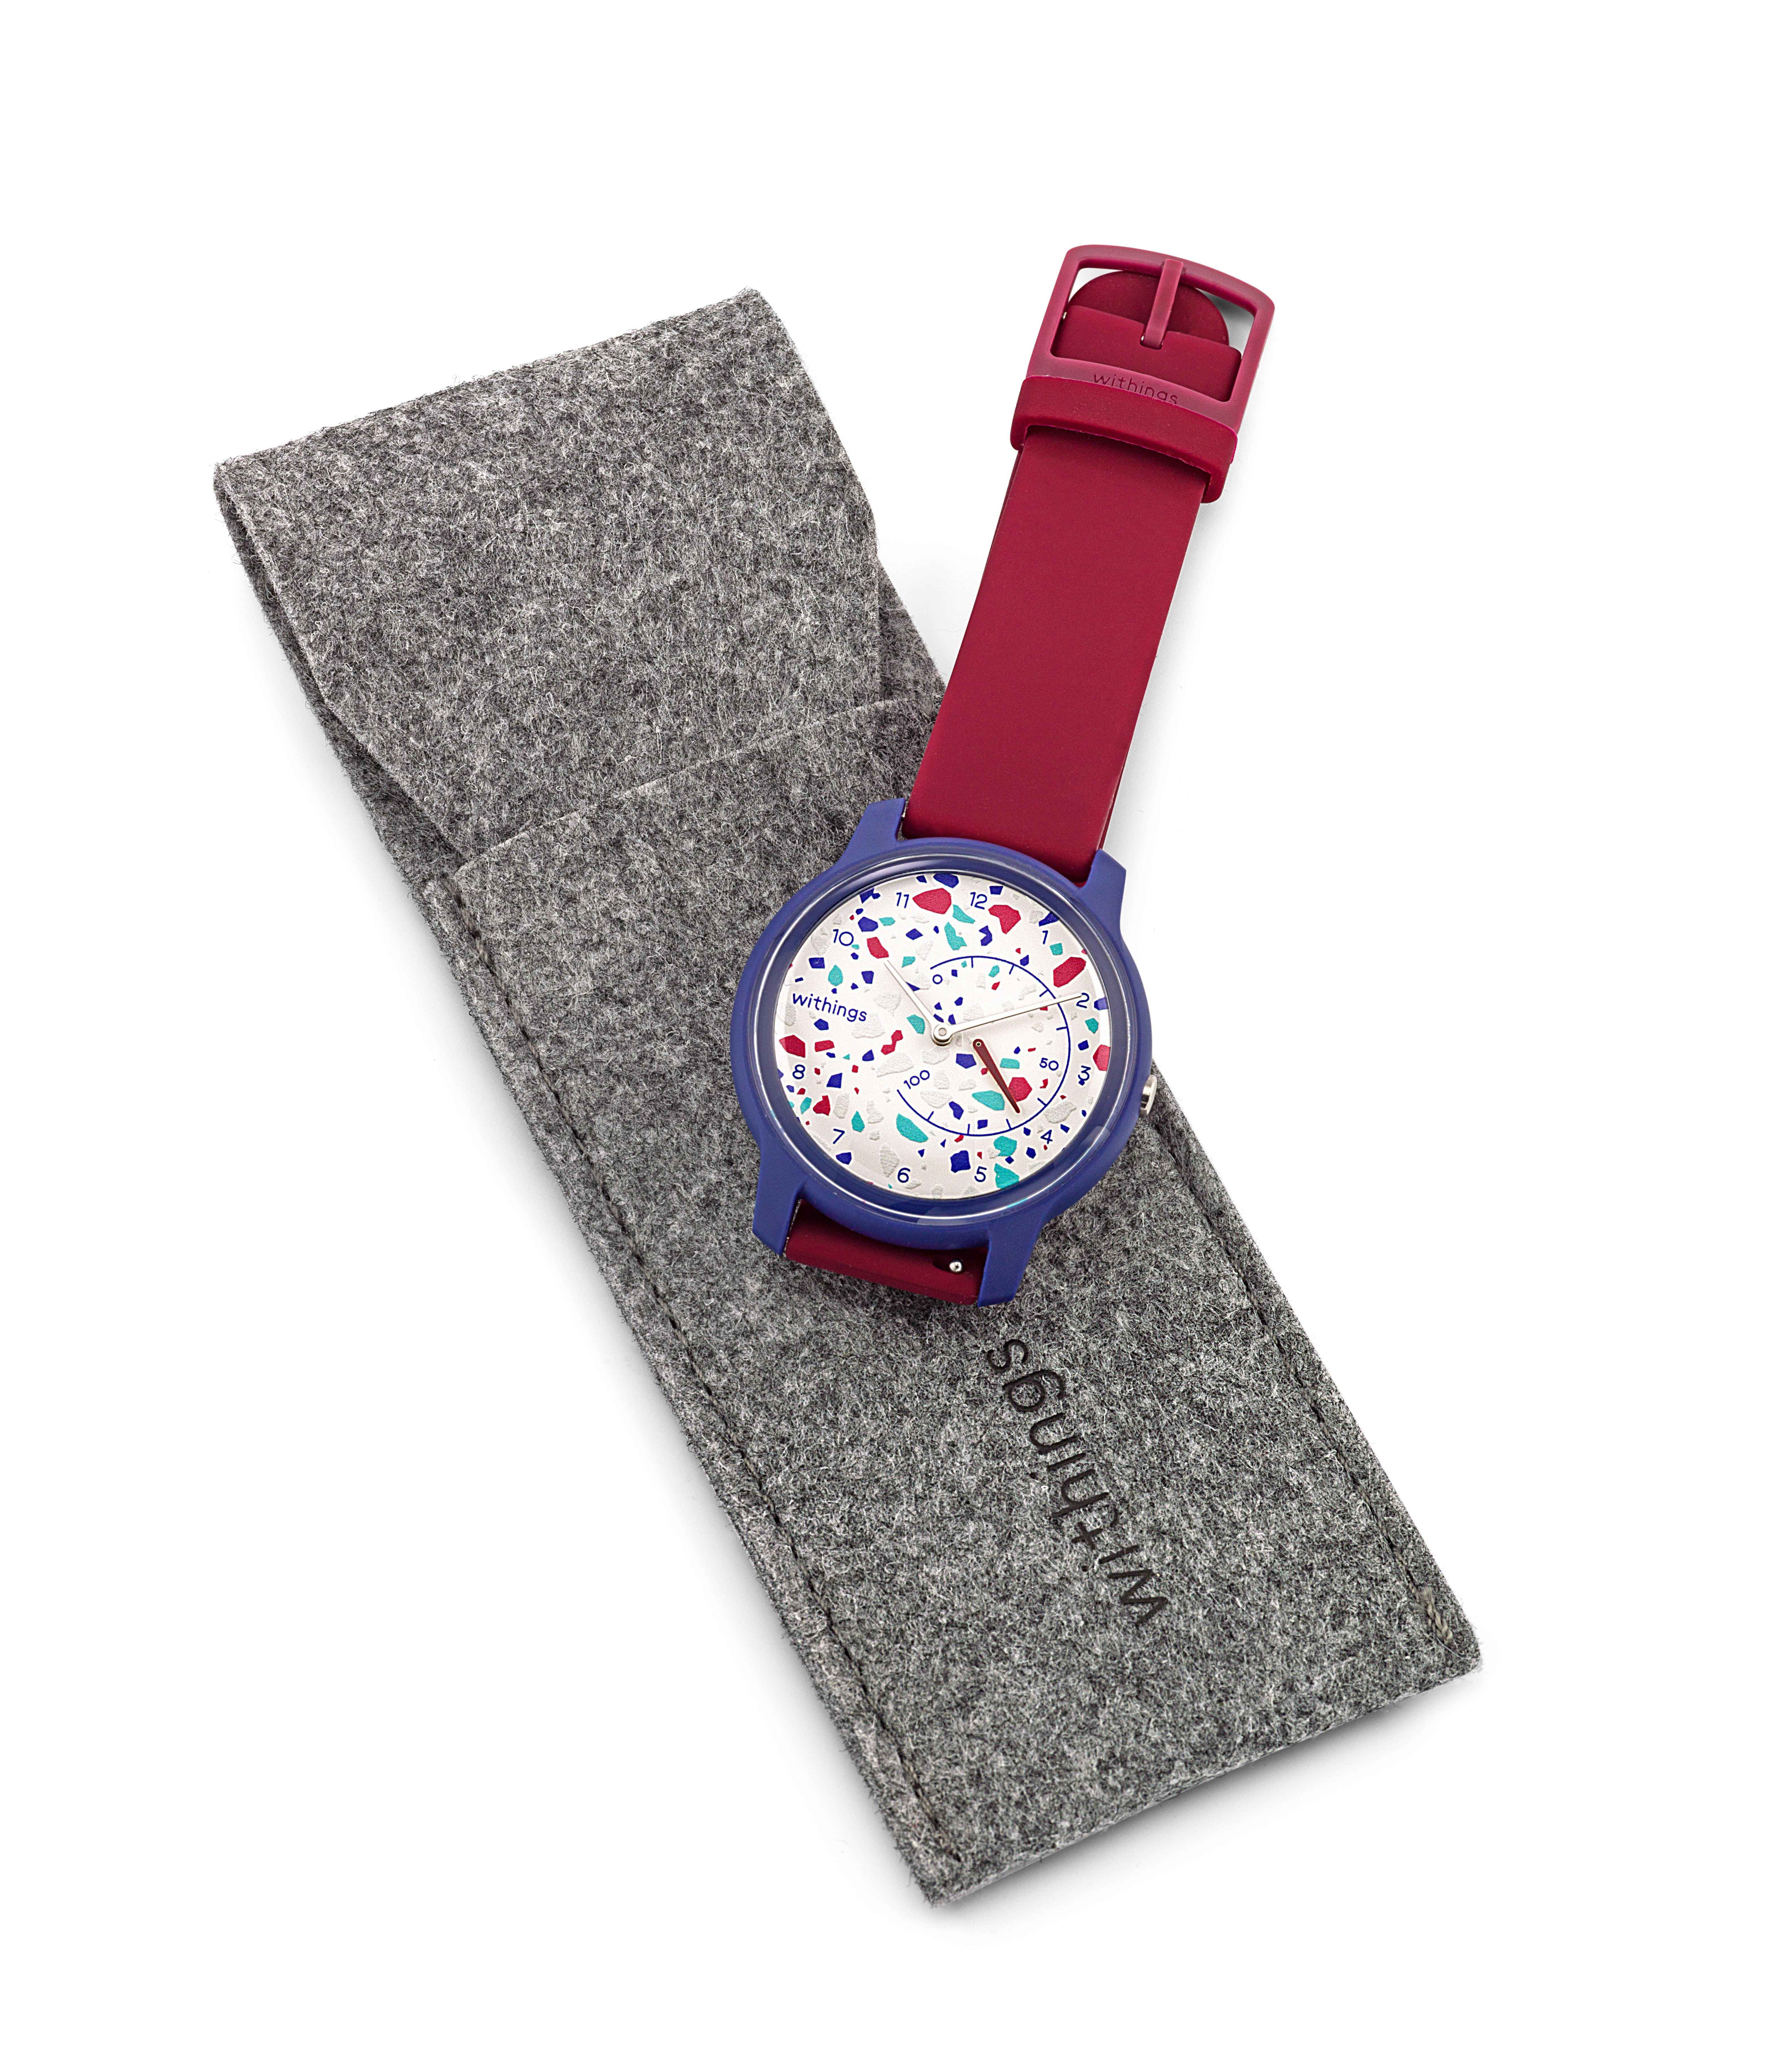 Montre connectée Withings Move - 34-1051-7